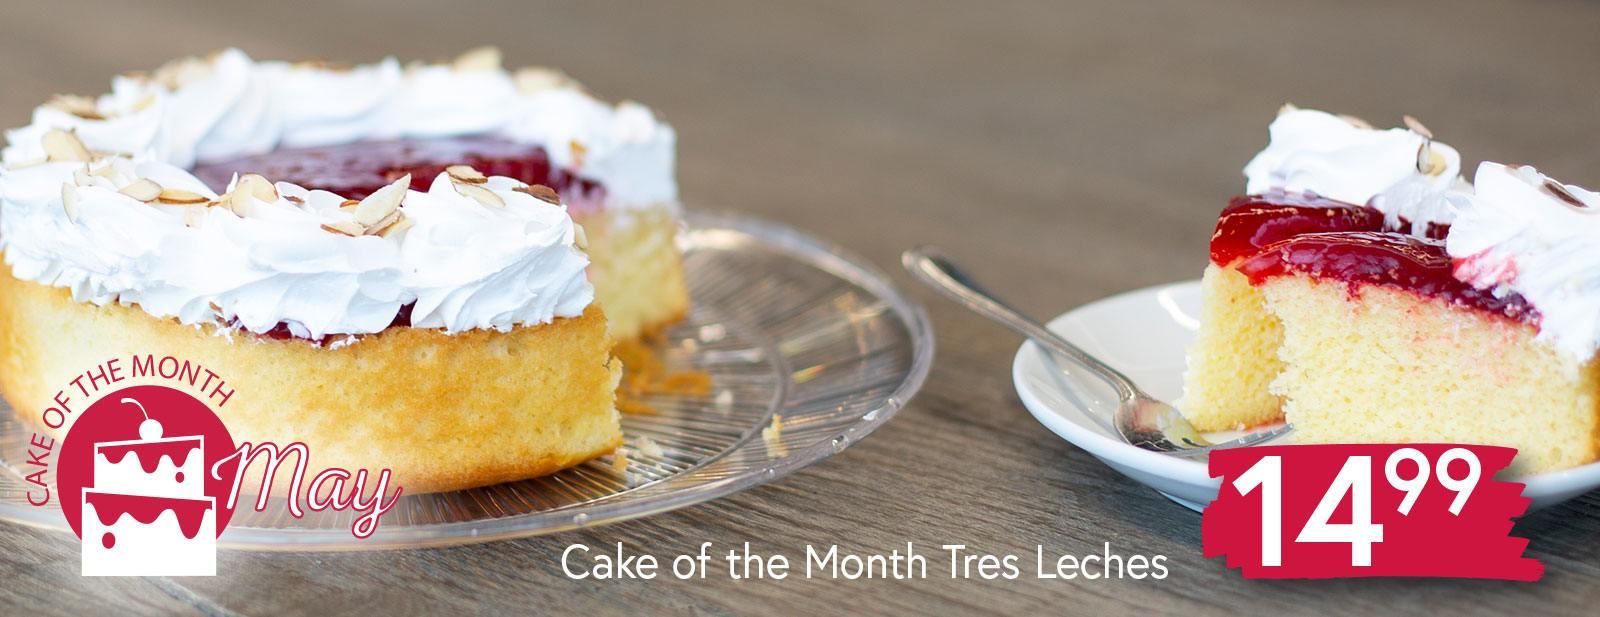 Tres Leches Cake $14.99